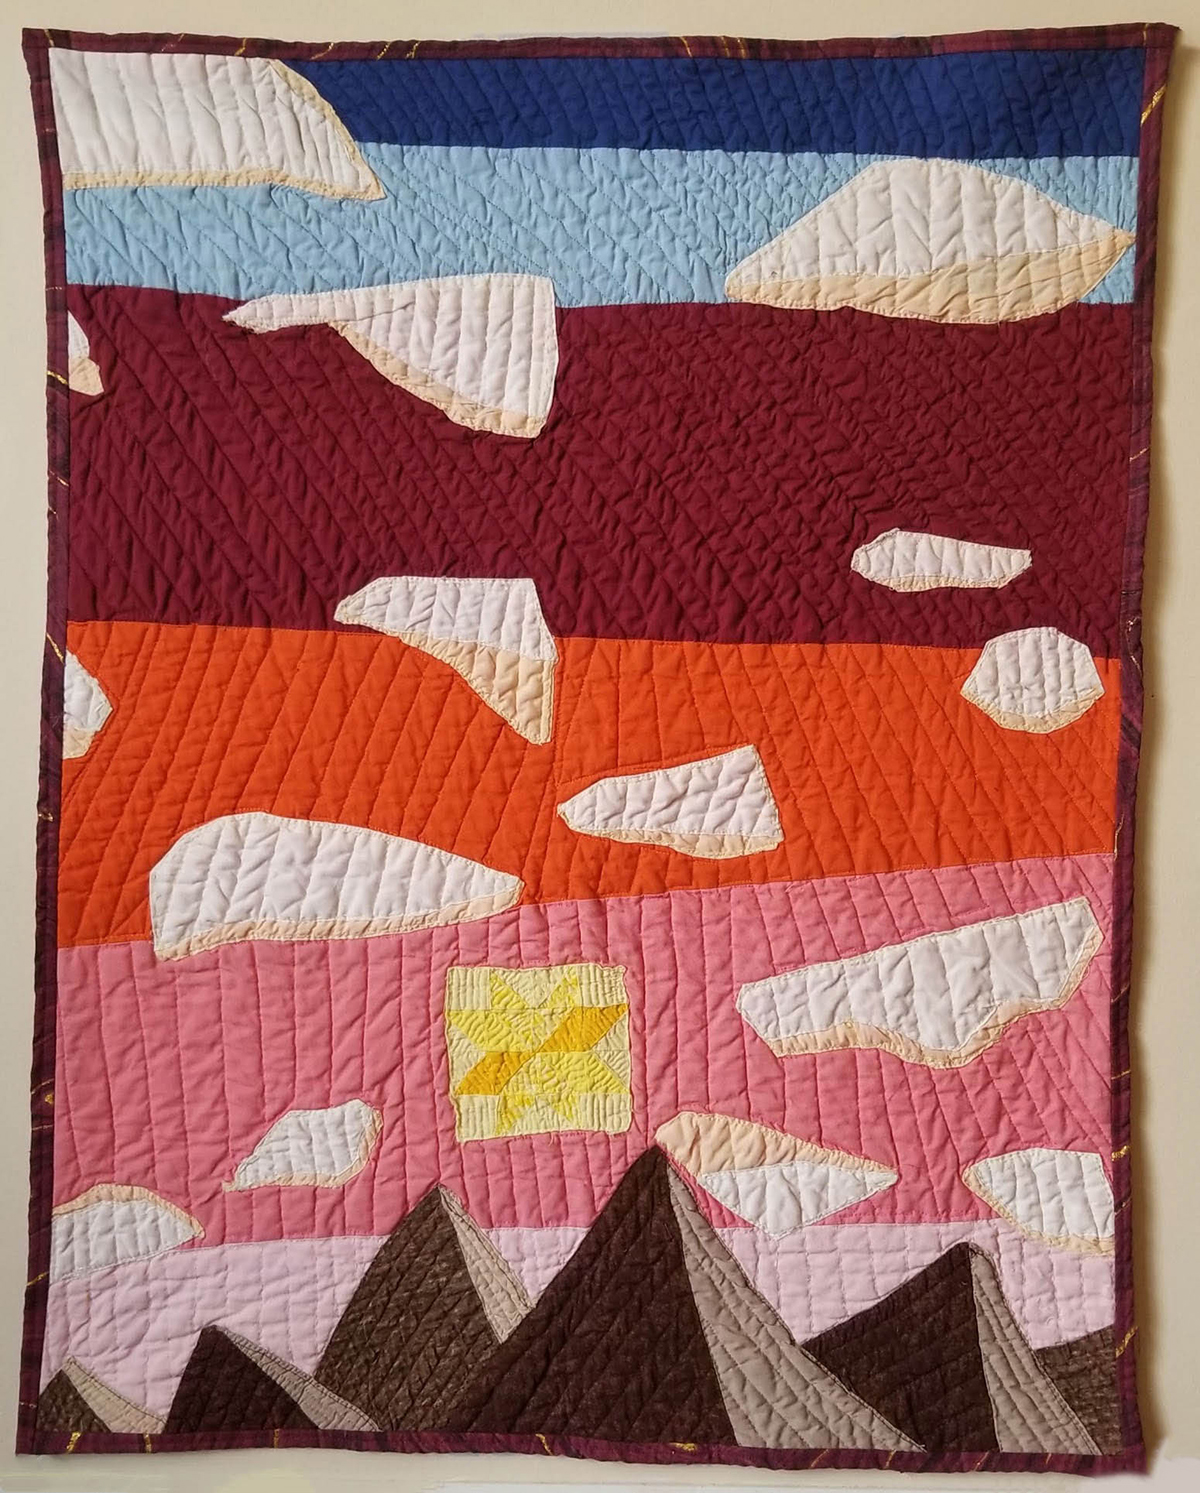 A nature quilt of the sun over mountains.